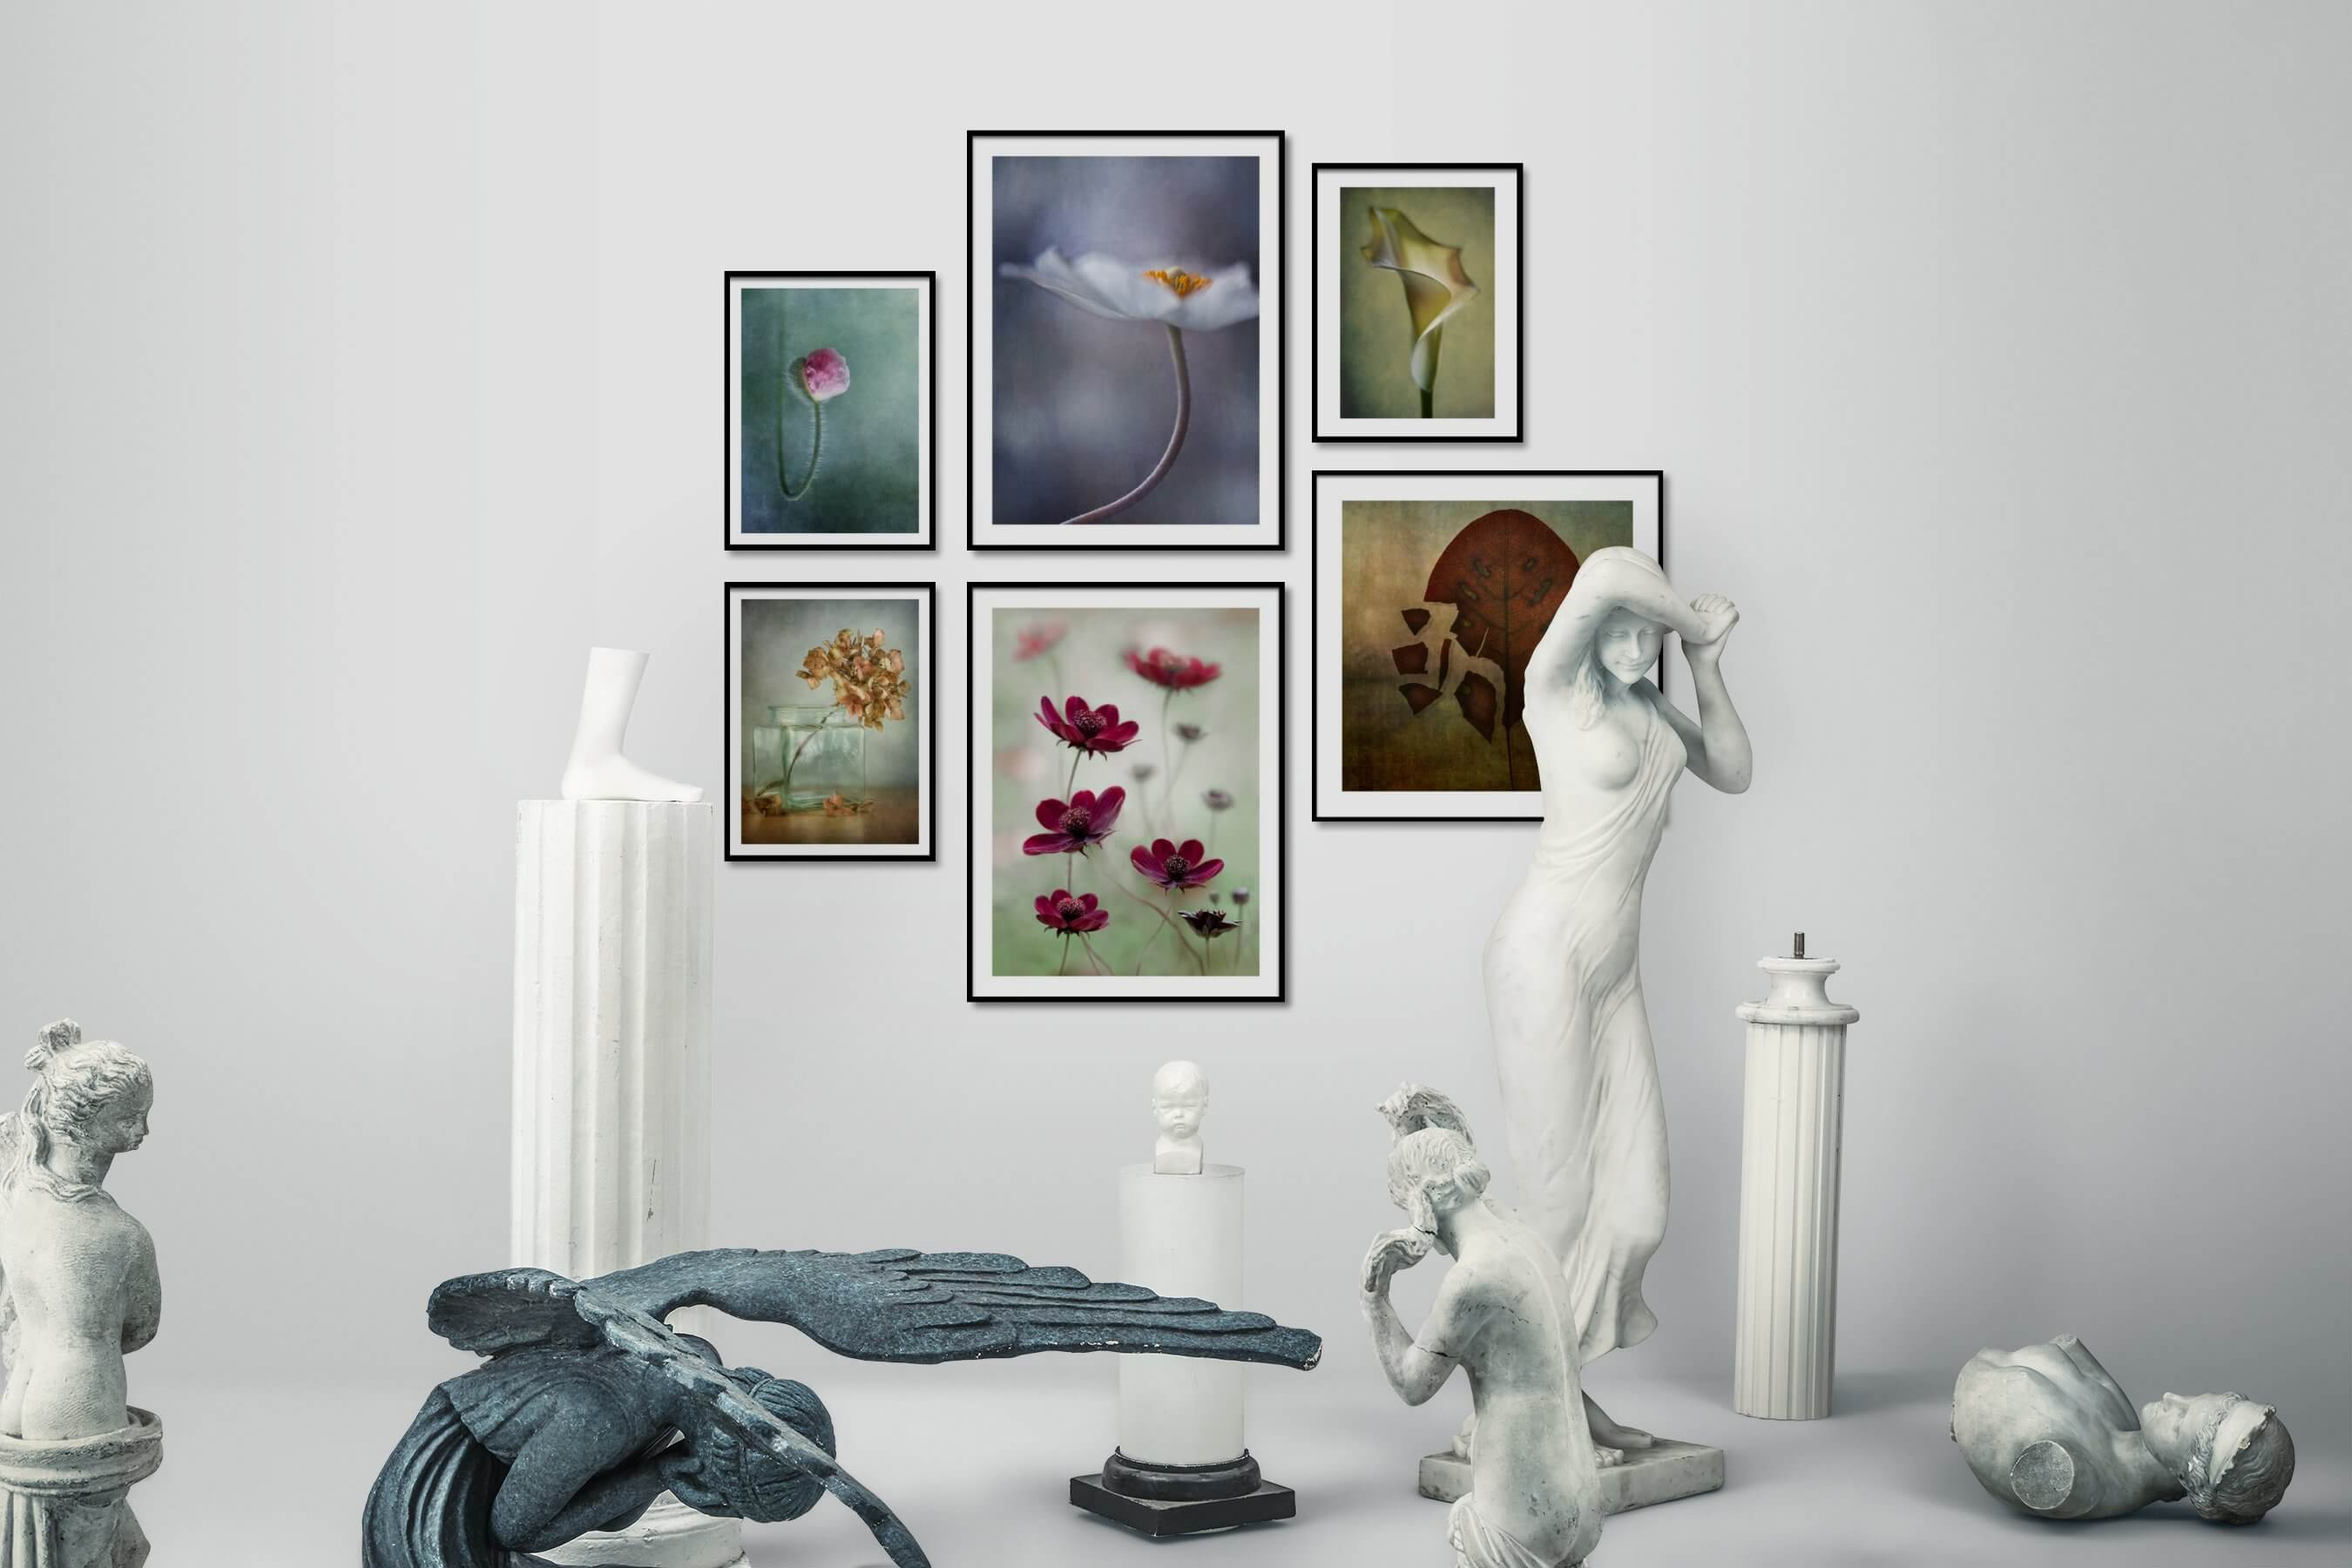 Gallery wall idea with six framed pictures arranged on a wall depicting For the Minimalist, Flowers & Plants, and Vintage